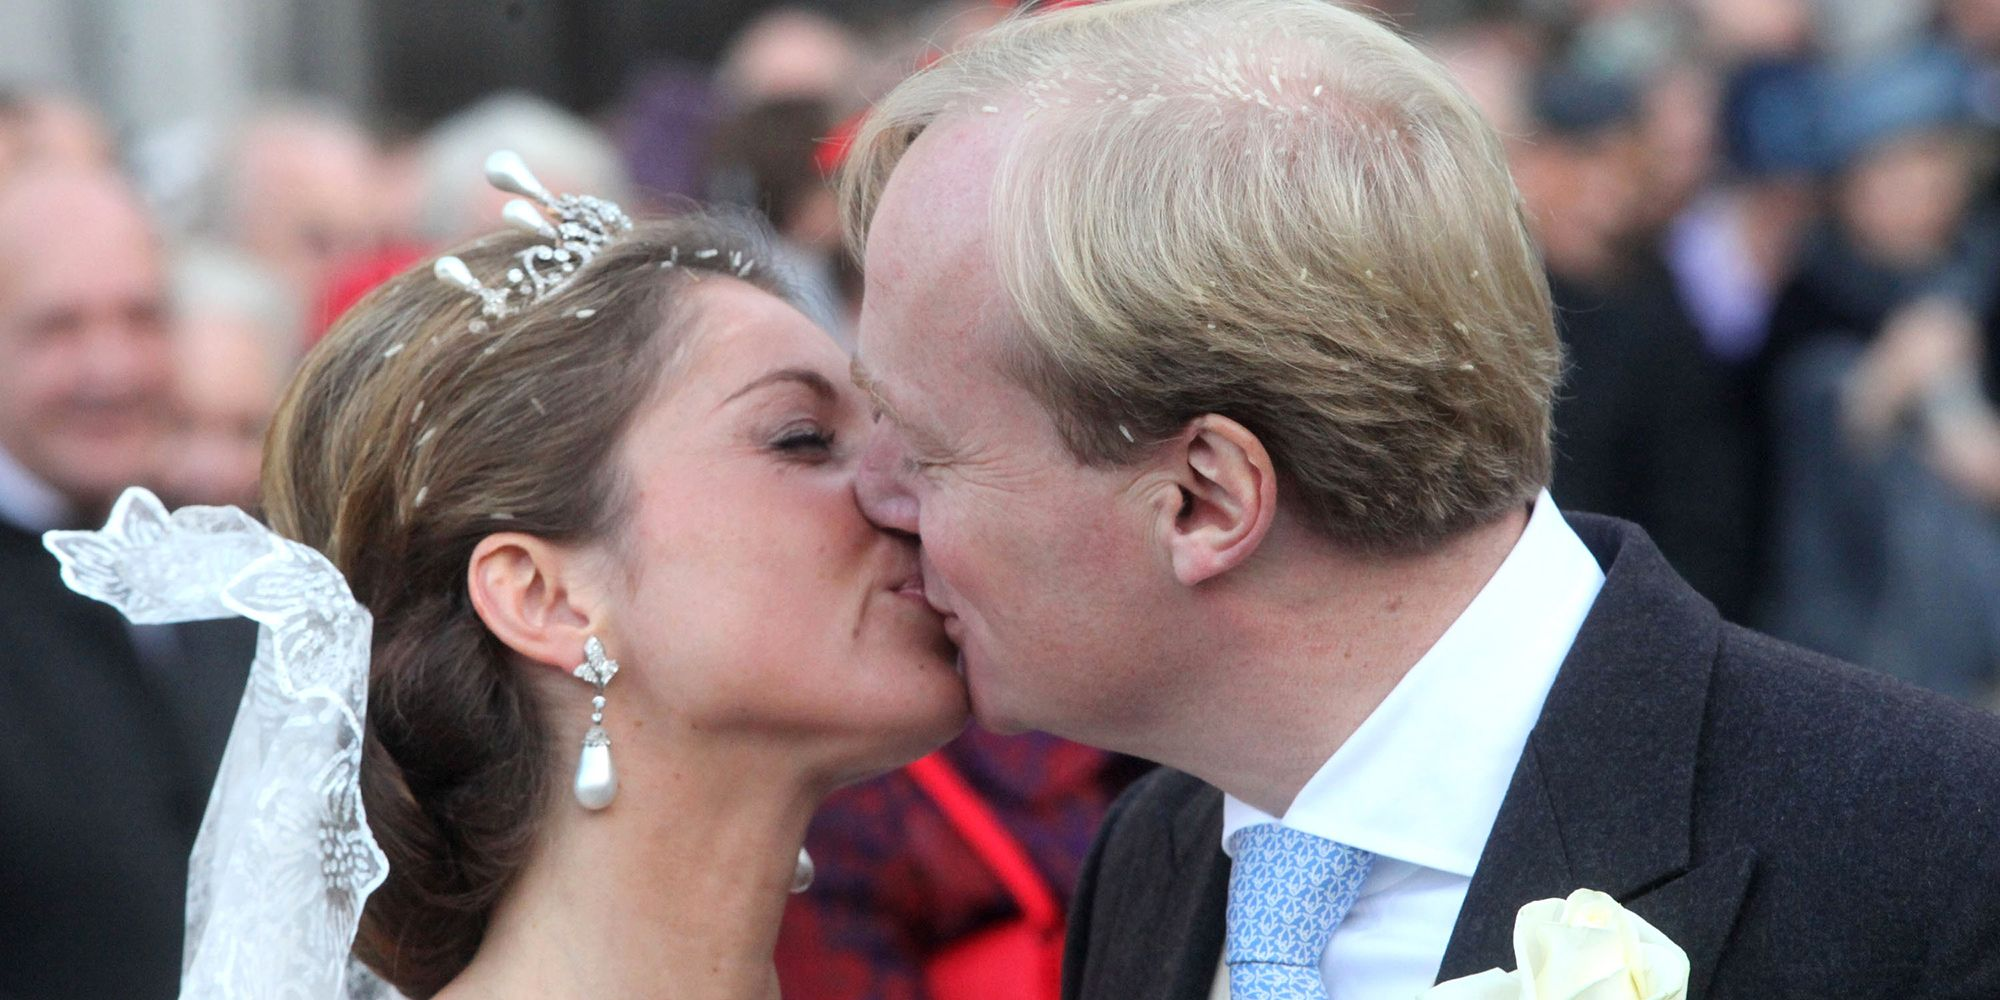 Royal Wedding Kiss.Royal Wedding Kisses Throughout The Years Best Royal